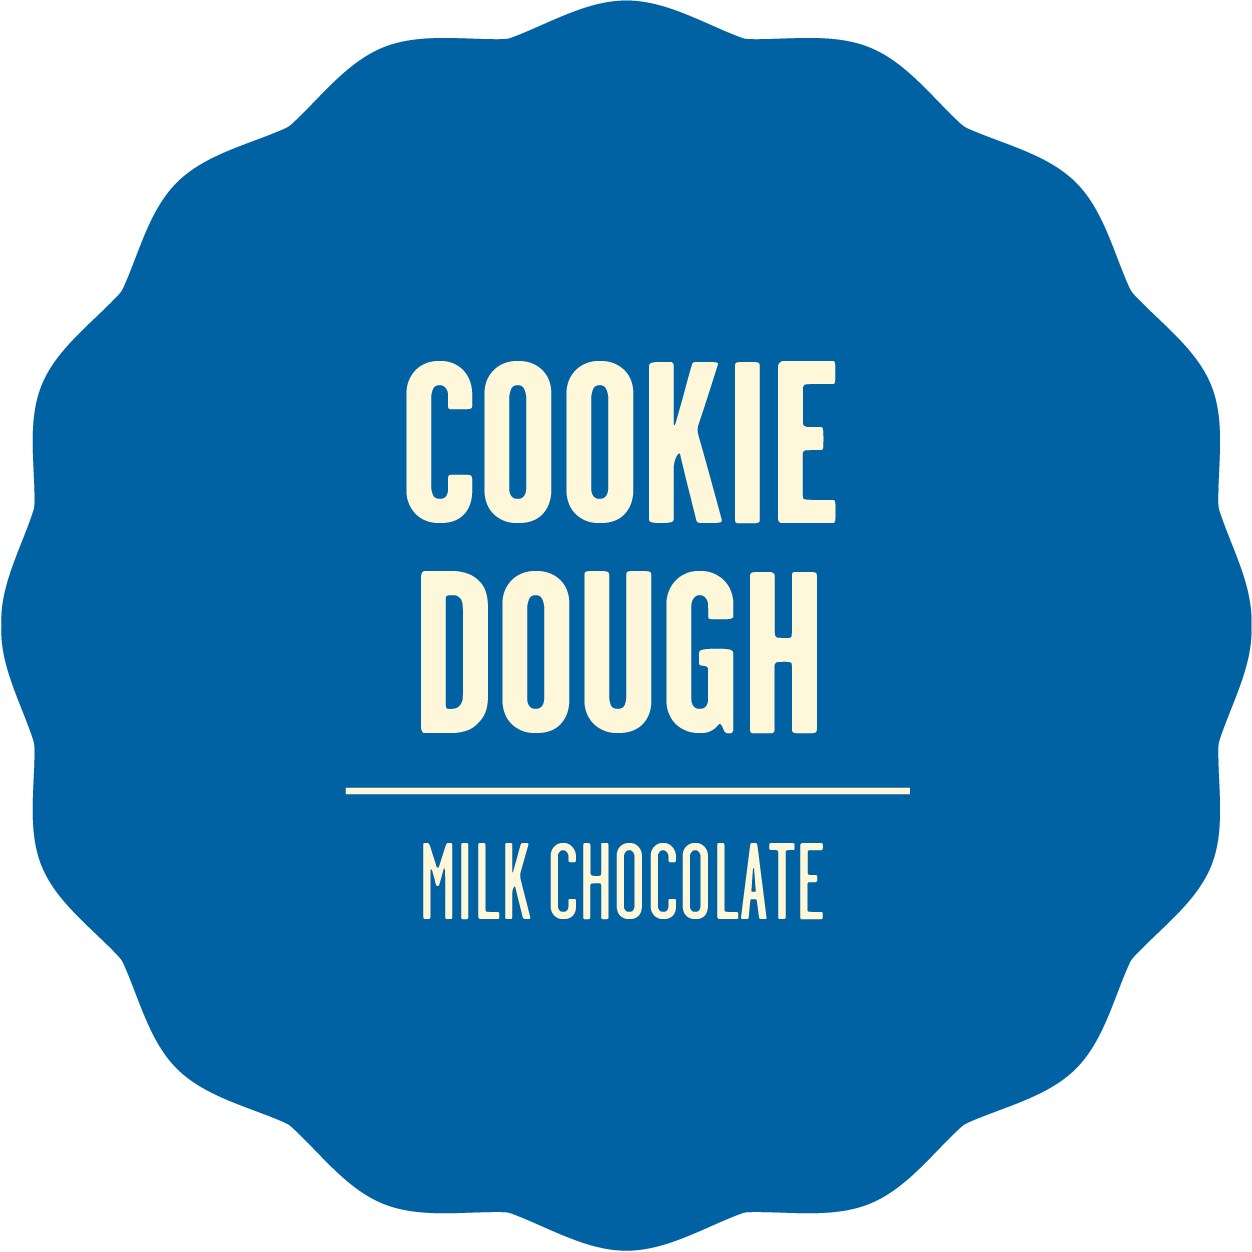 Milk chocolate cookie dough 2x %281%29